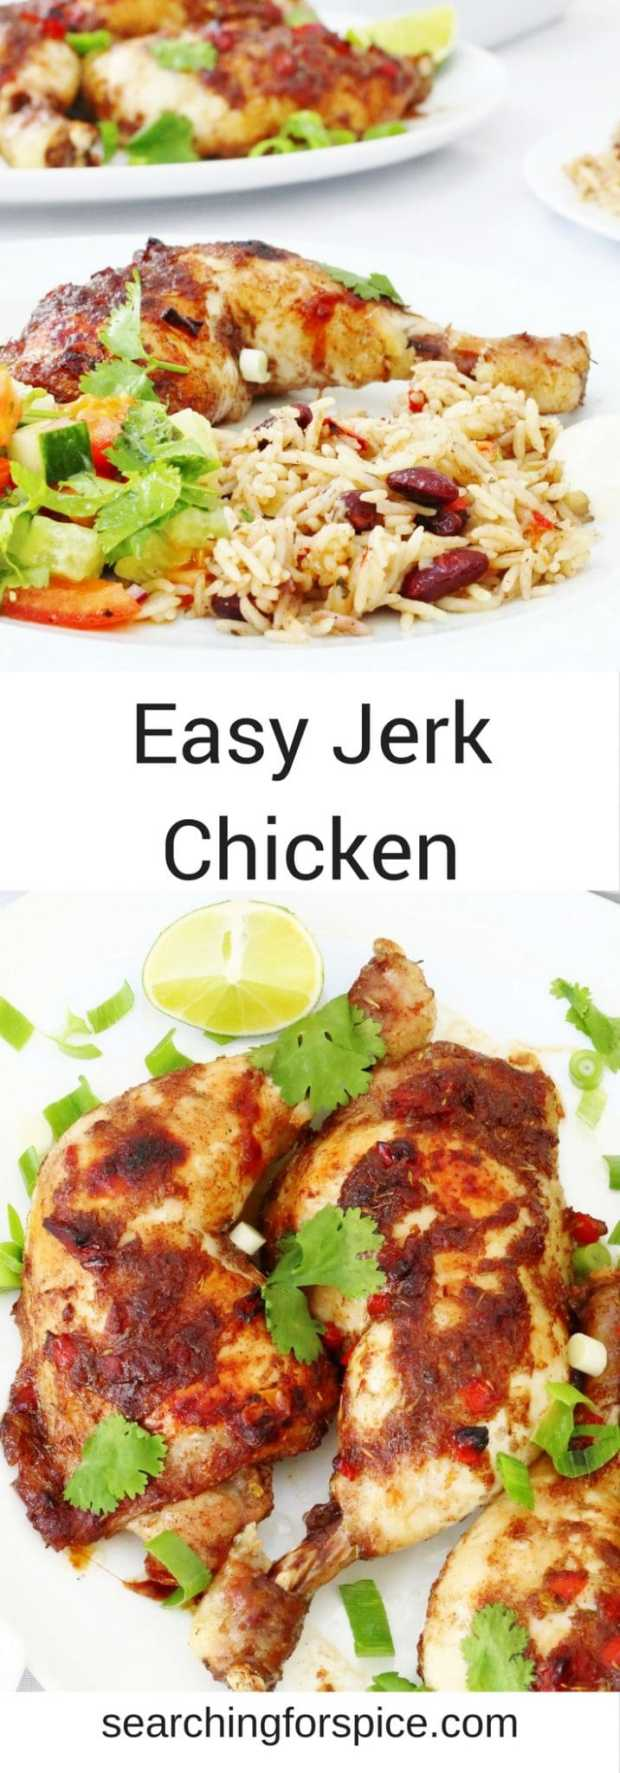 This easy jerk chicken recipe is full of flavour but not too hot. It makes a great easy family meal that kids will love too.